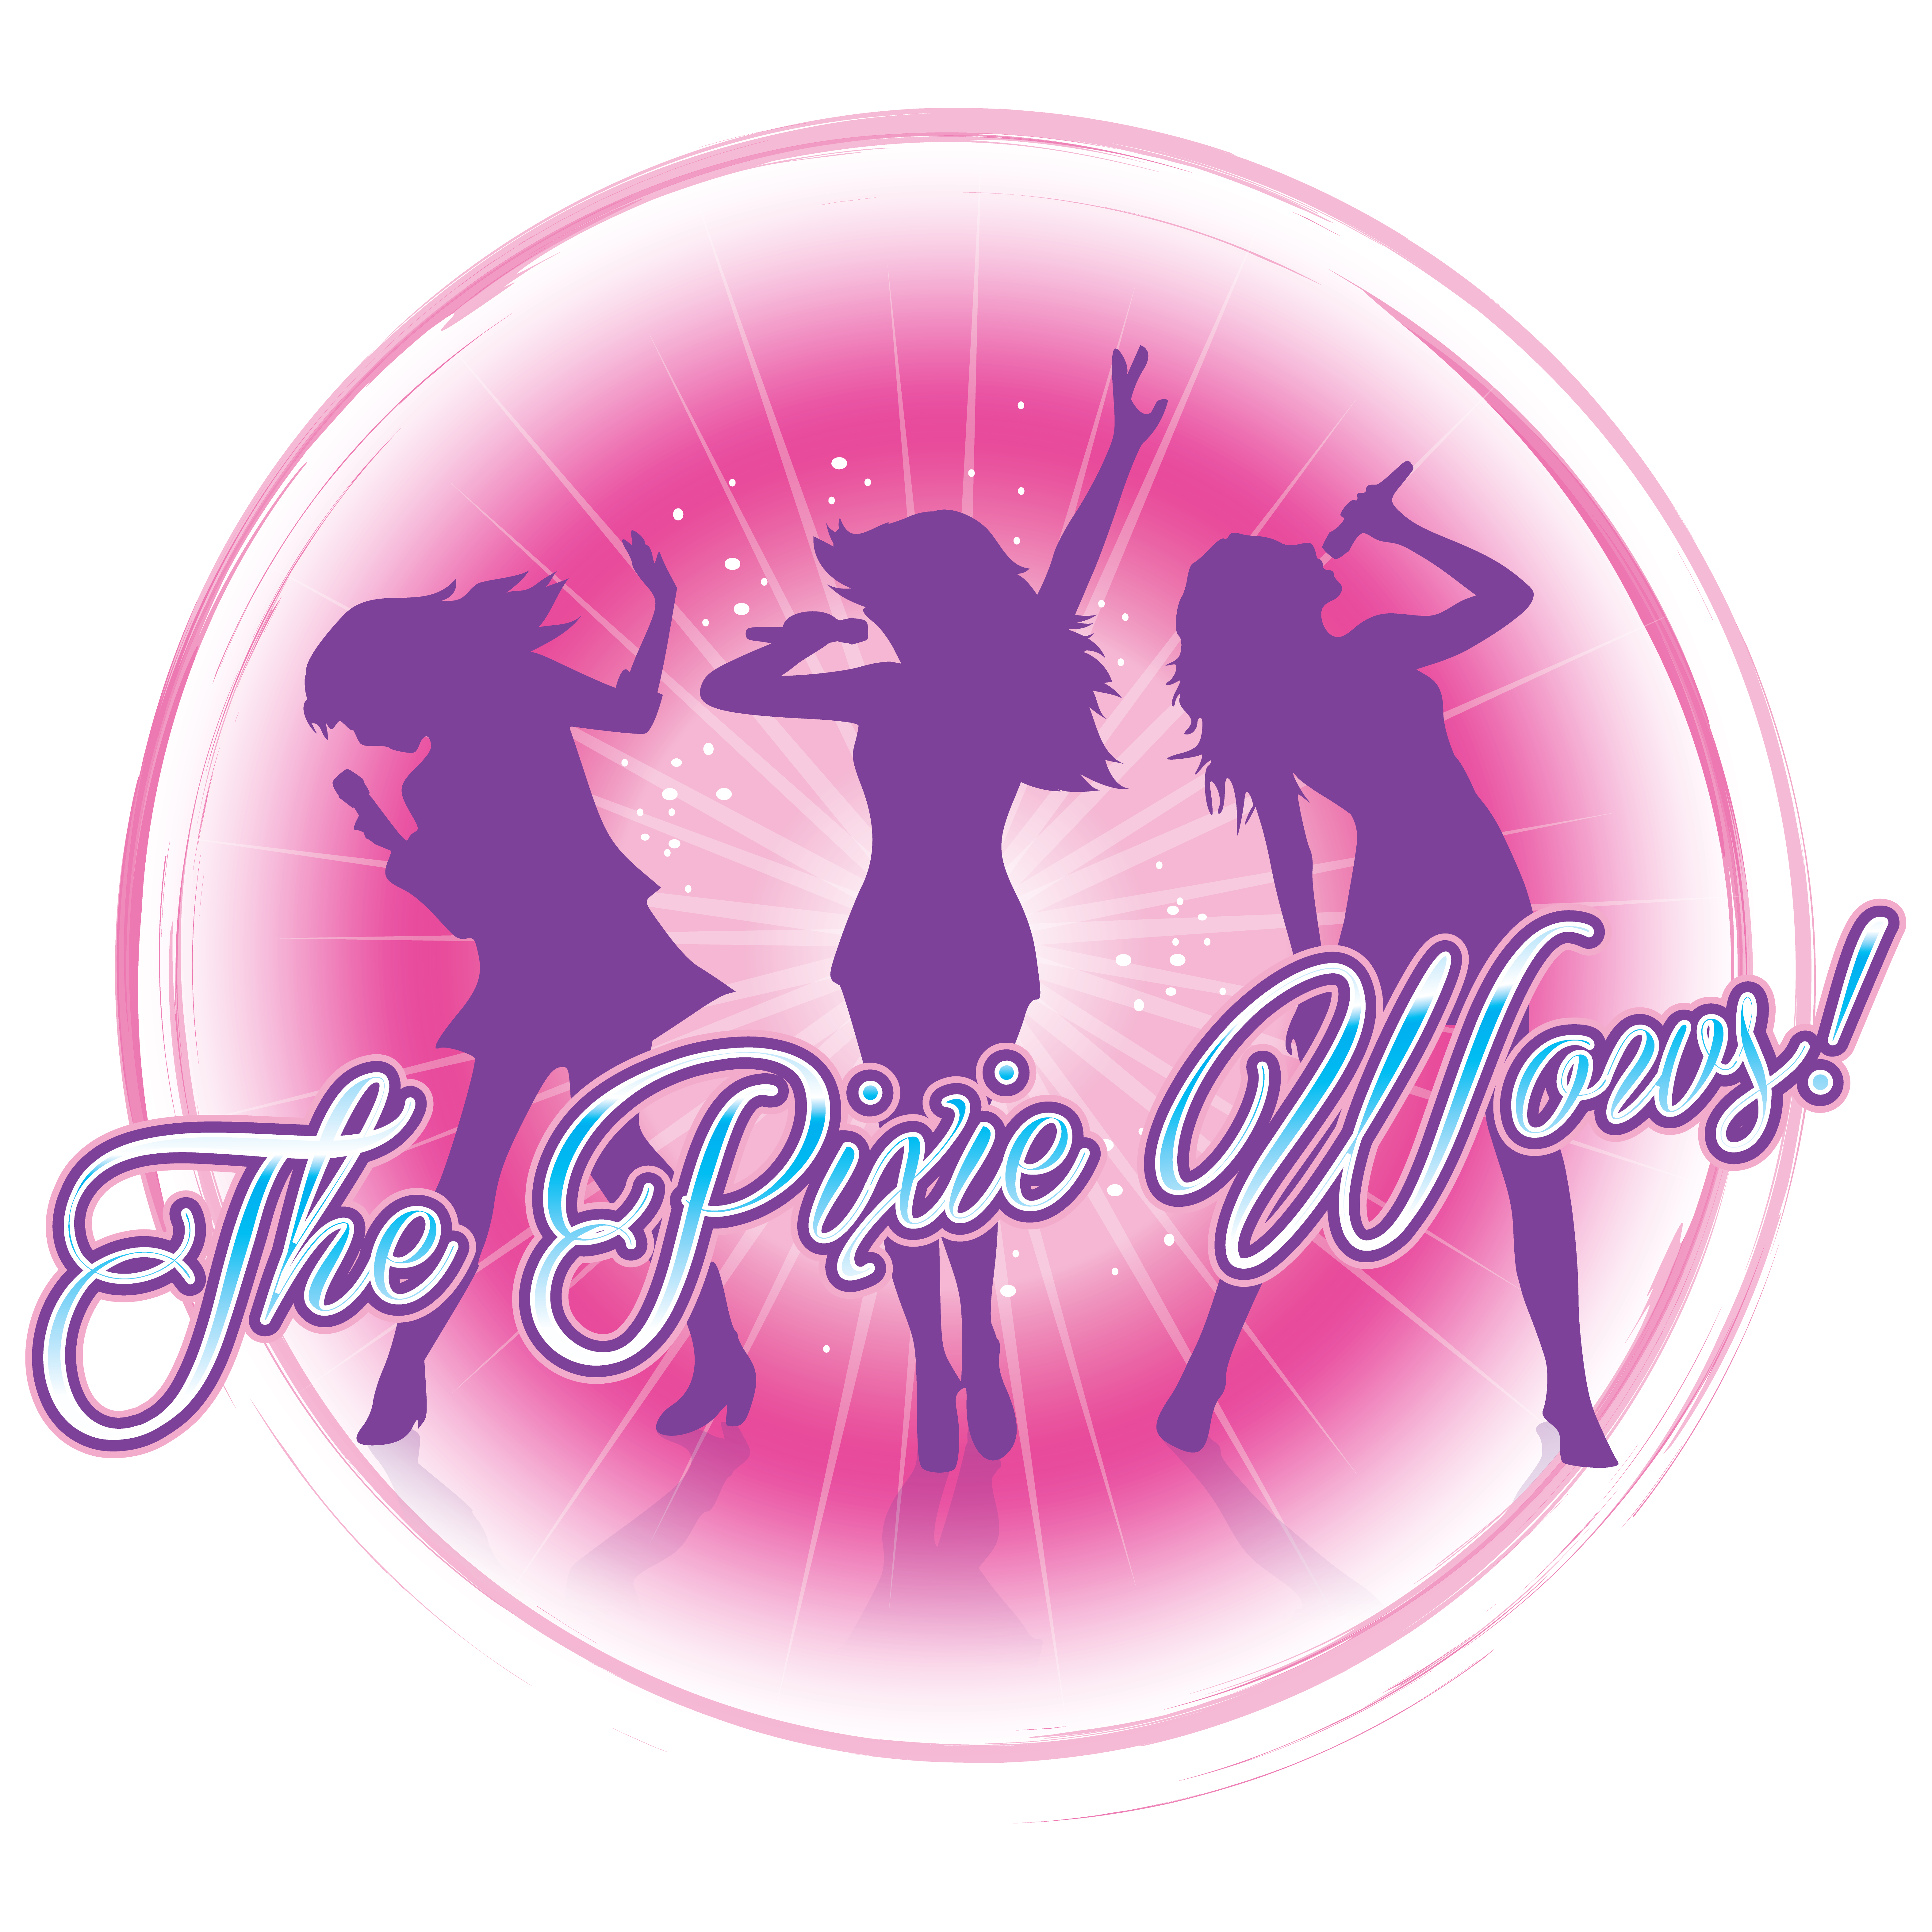 The Pixie Wows! — Dance. Party. Band. - The Pixie Wows! — Dance. Party. Band.